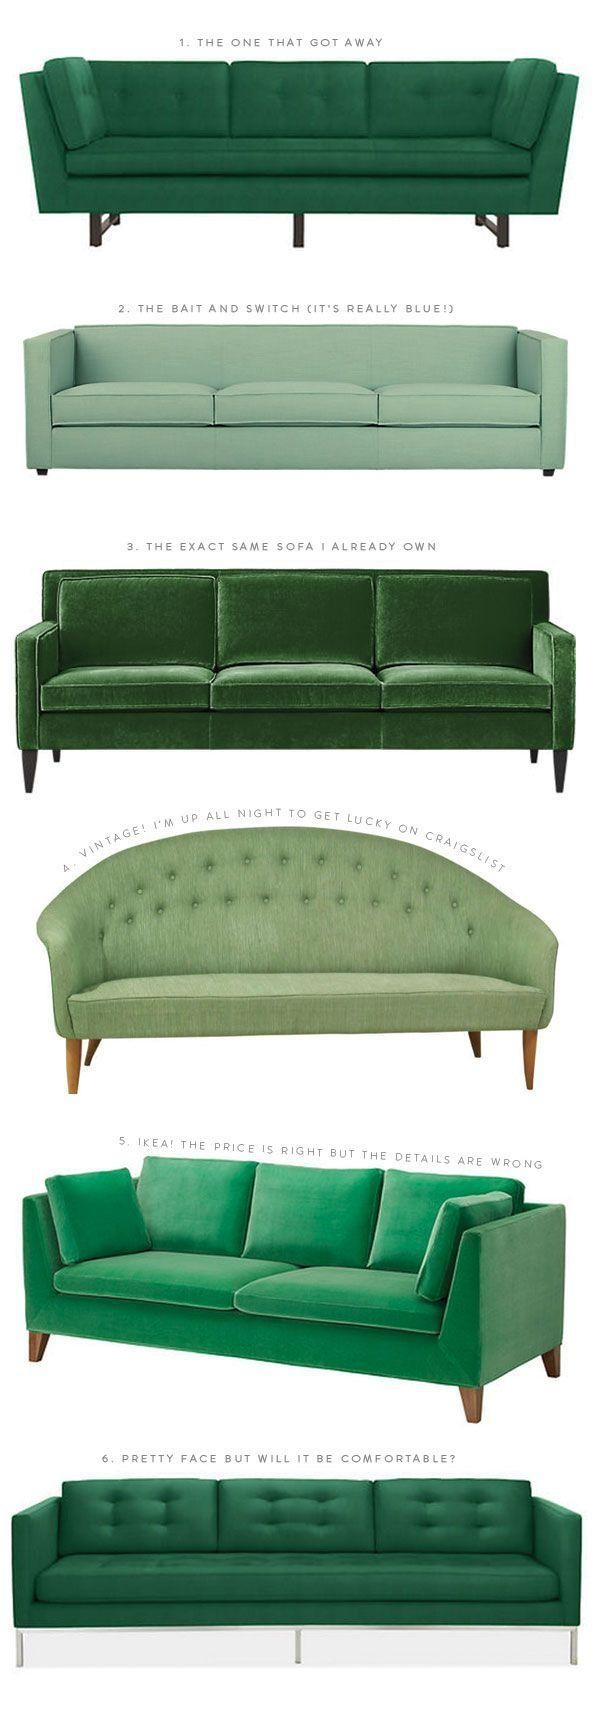 308 Best Sofas & Chairs – Ahhhhh! Images On Pinterest | Sofas Within Mint Green Sofas (Image 2 of 20)